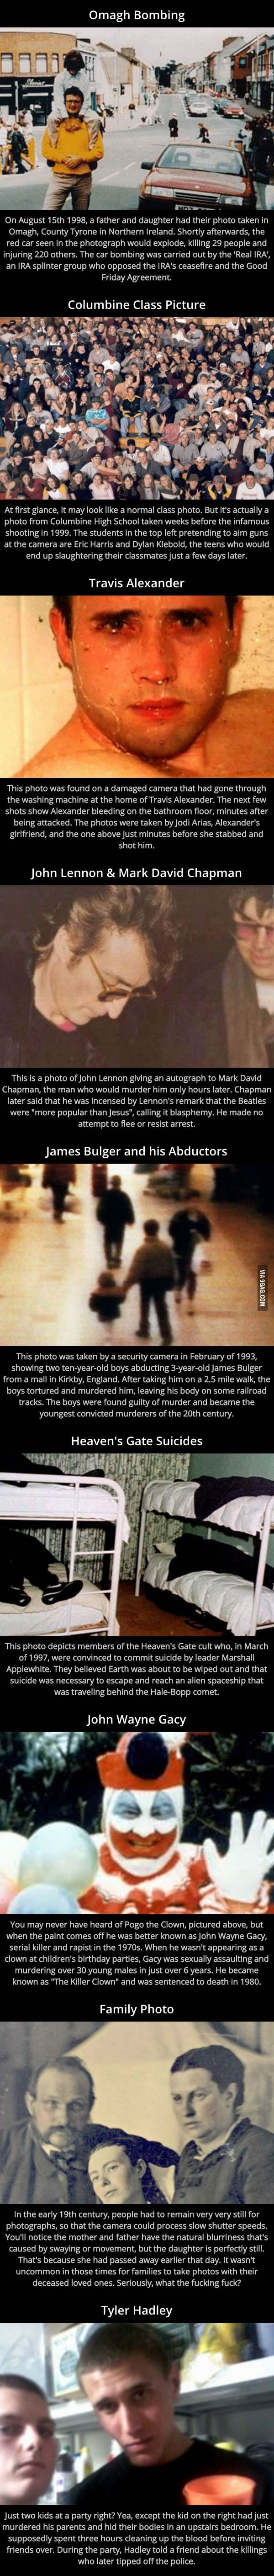 9 Innocent Looking Pictures With A Scary Ass Backstory - 9GAG